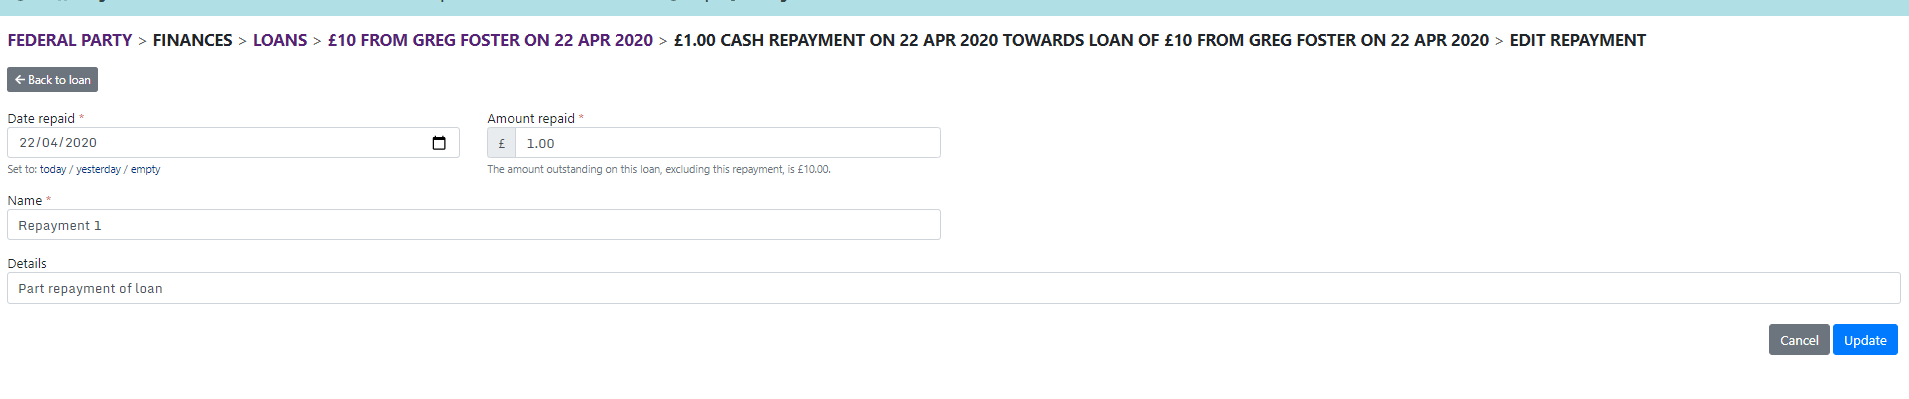 Edit repayment page